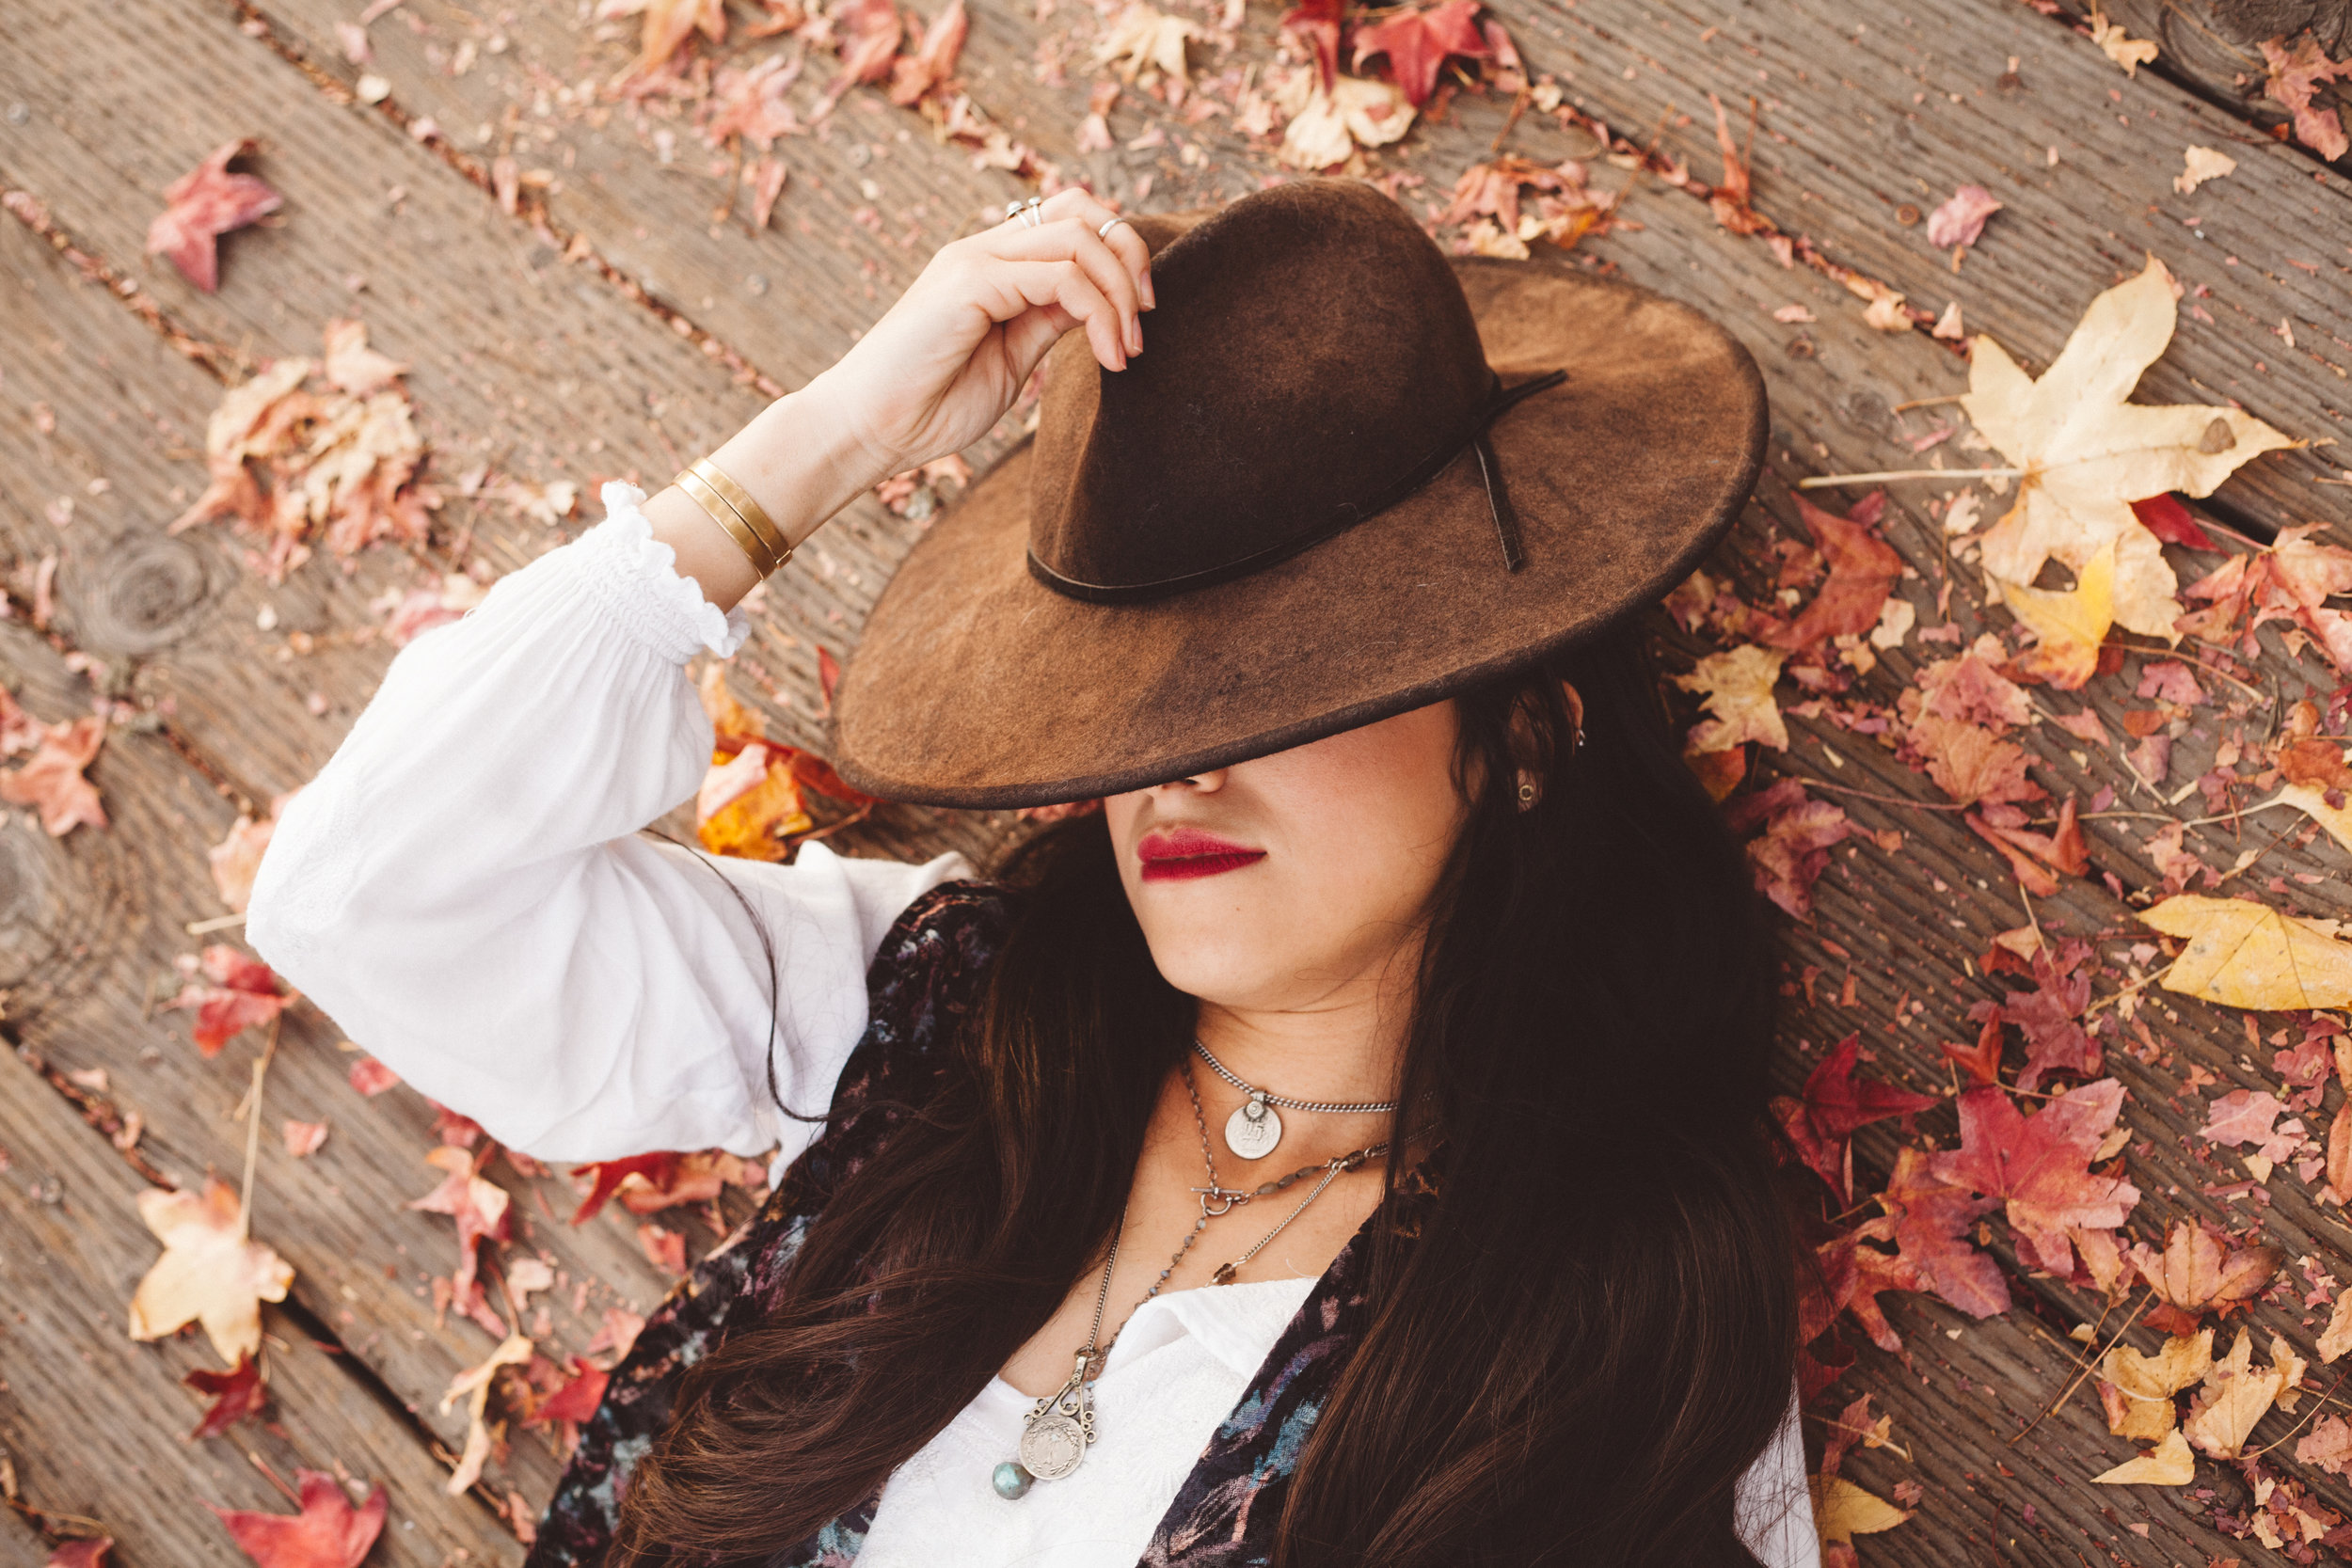 Vintage coin necklaces paired with Labradorite lariat necklace. Photo by Ruby Villalobos.